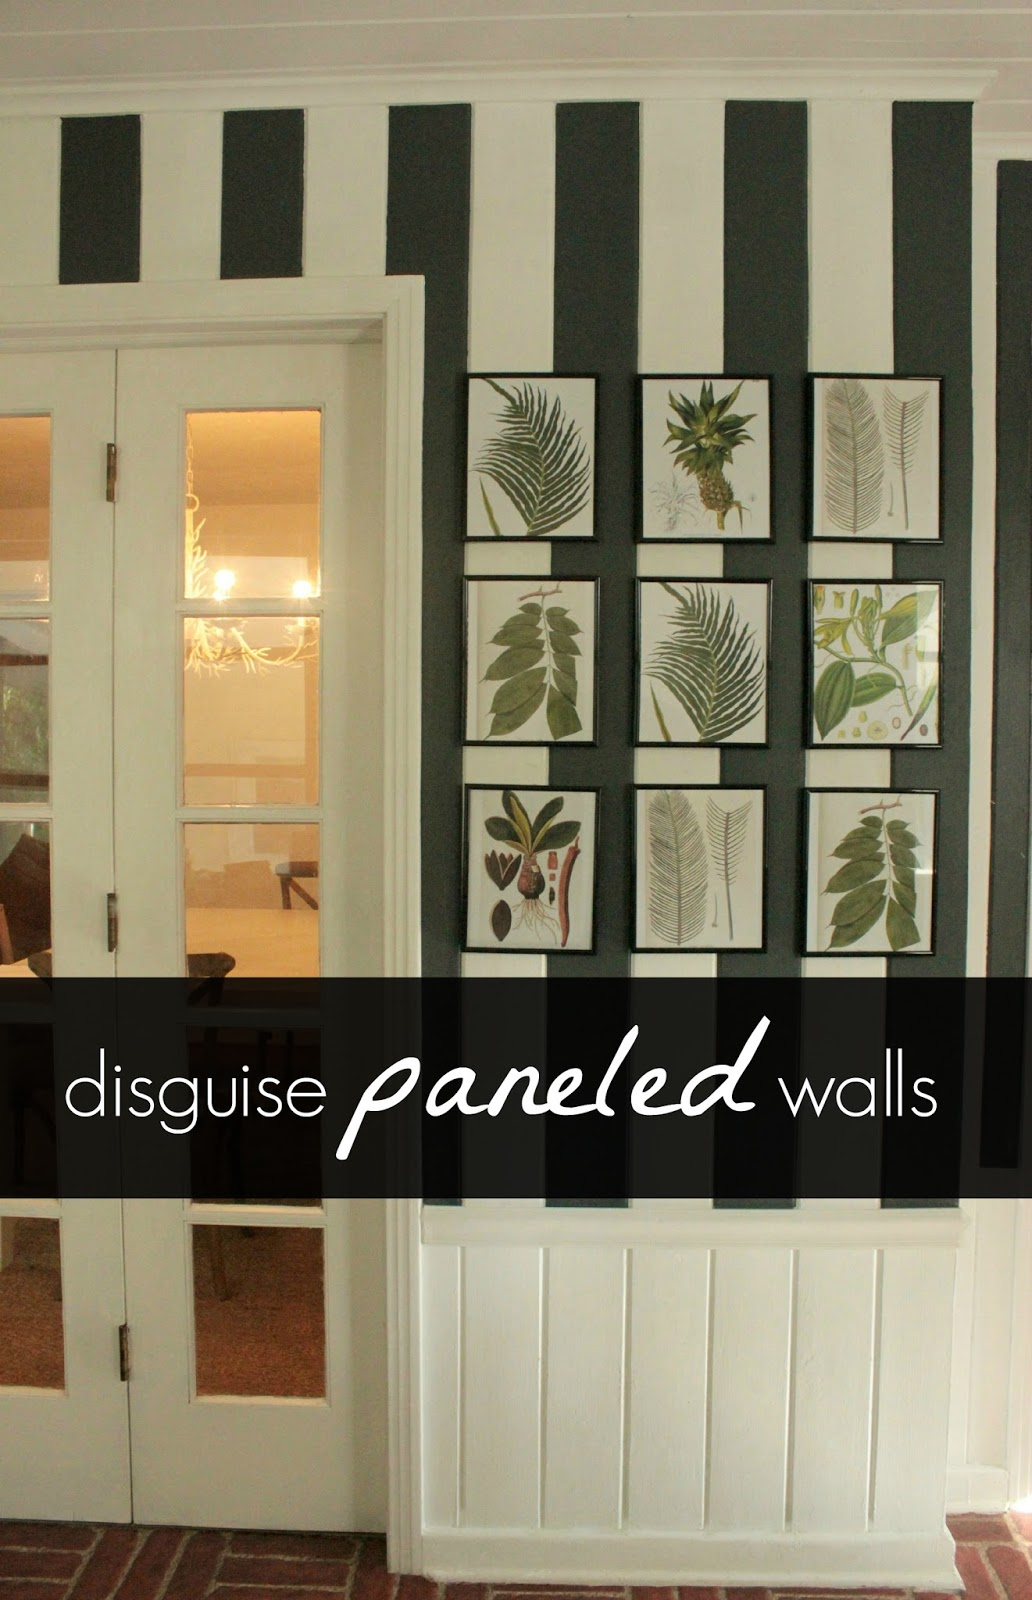 Painted Paneled Room: Disguise Paneled Walls